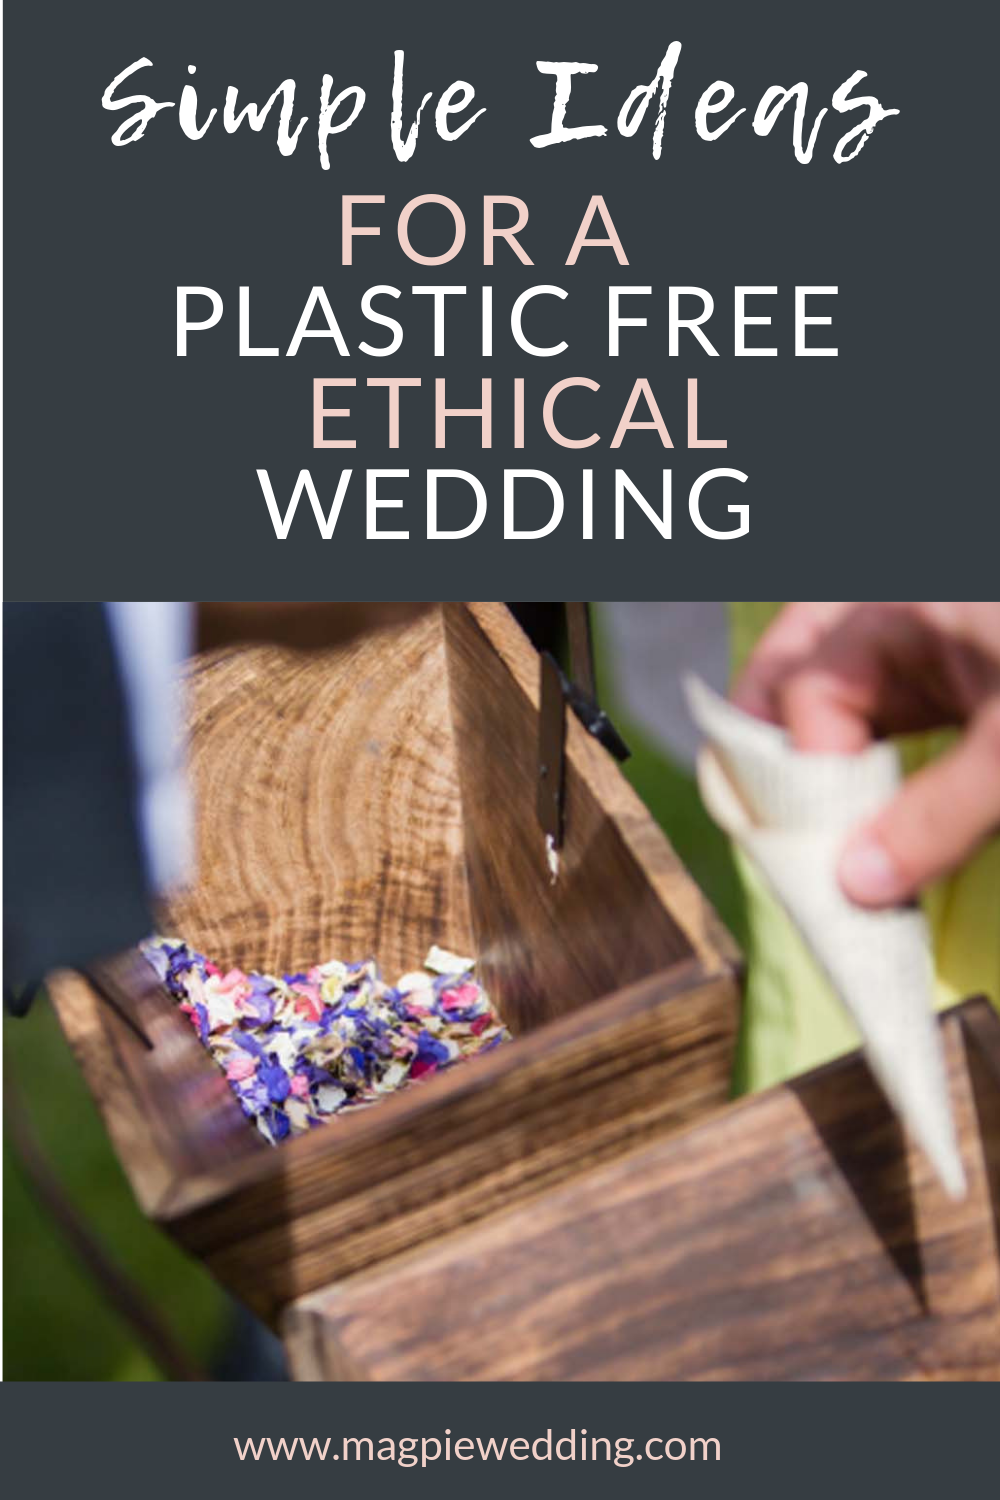 Simple swaps to have a plastic free wedding (and help save the planet)